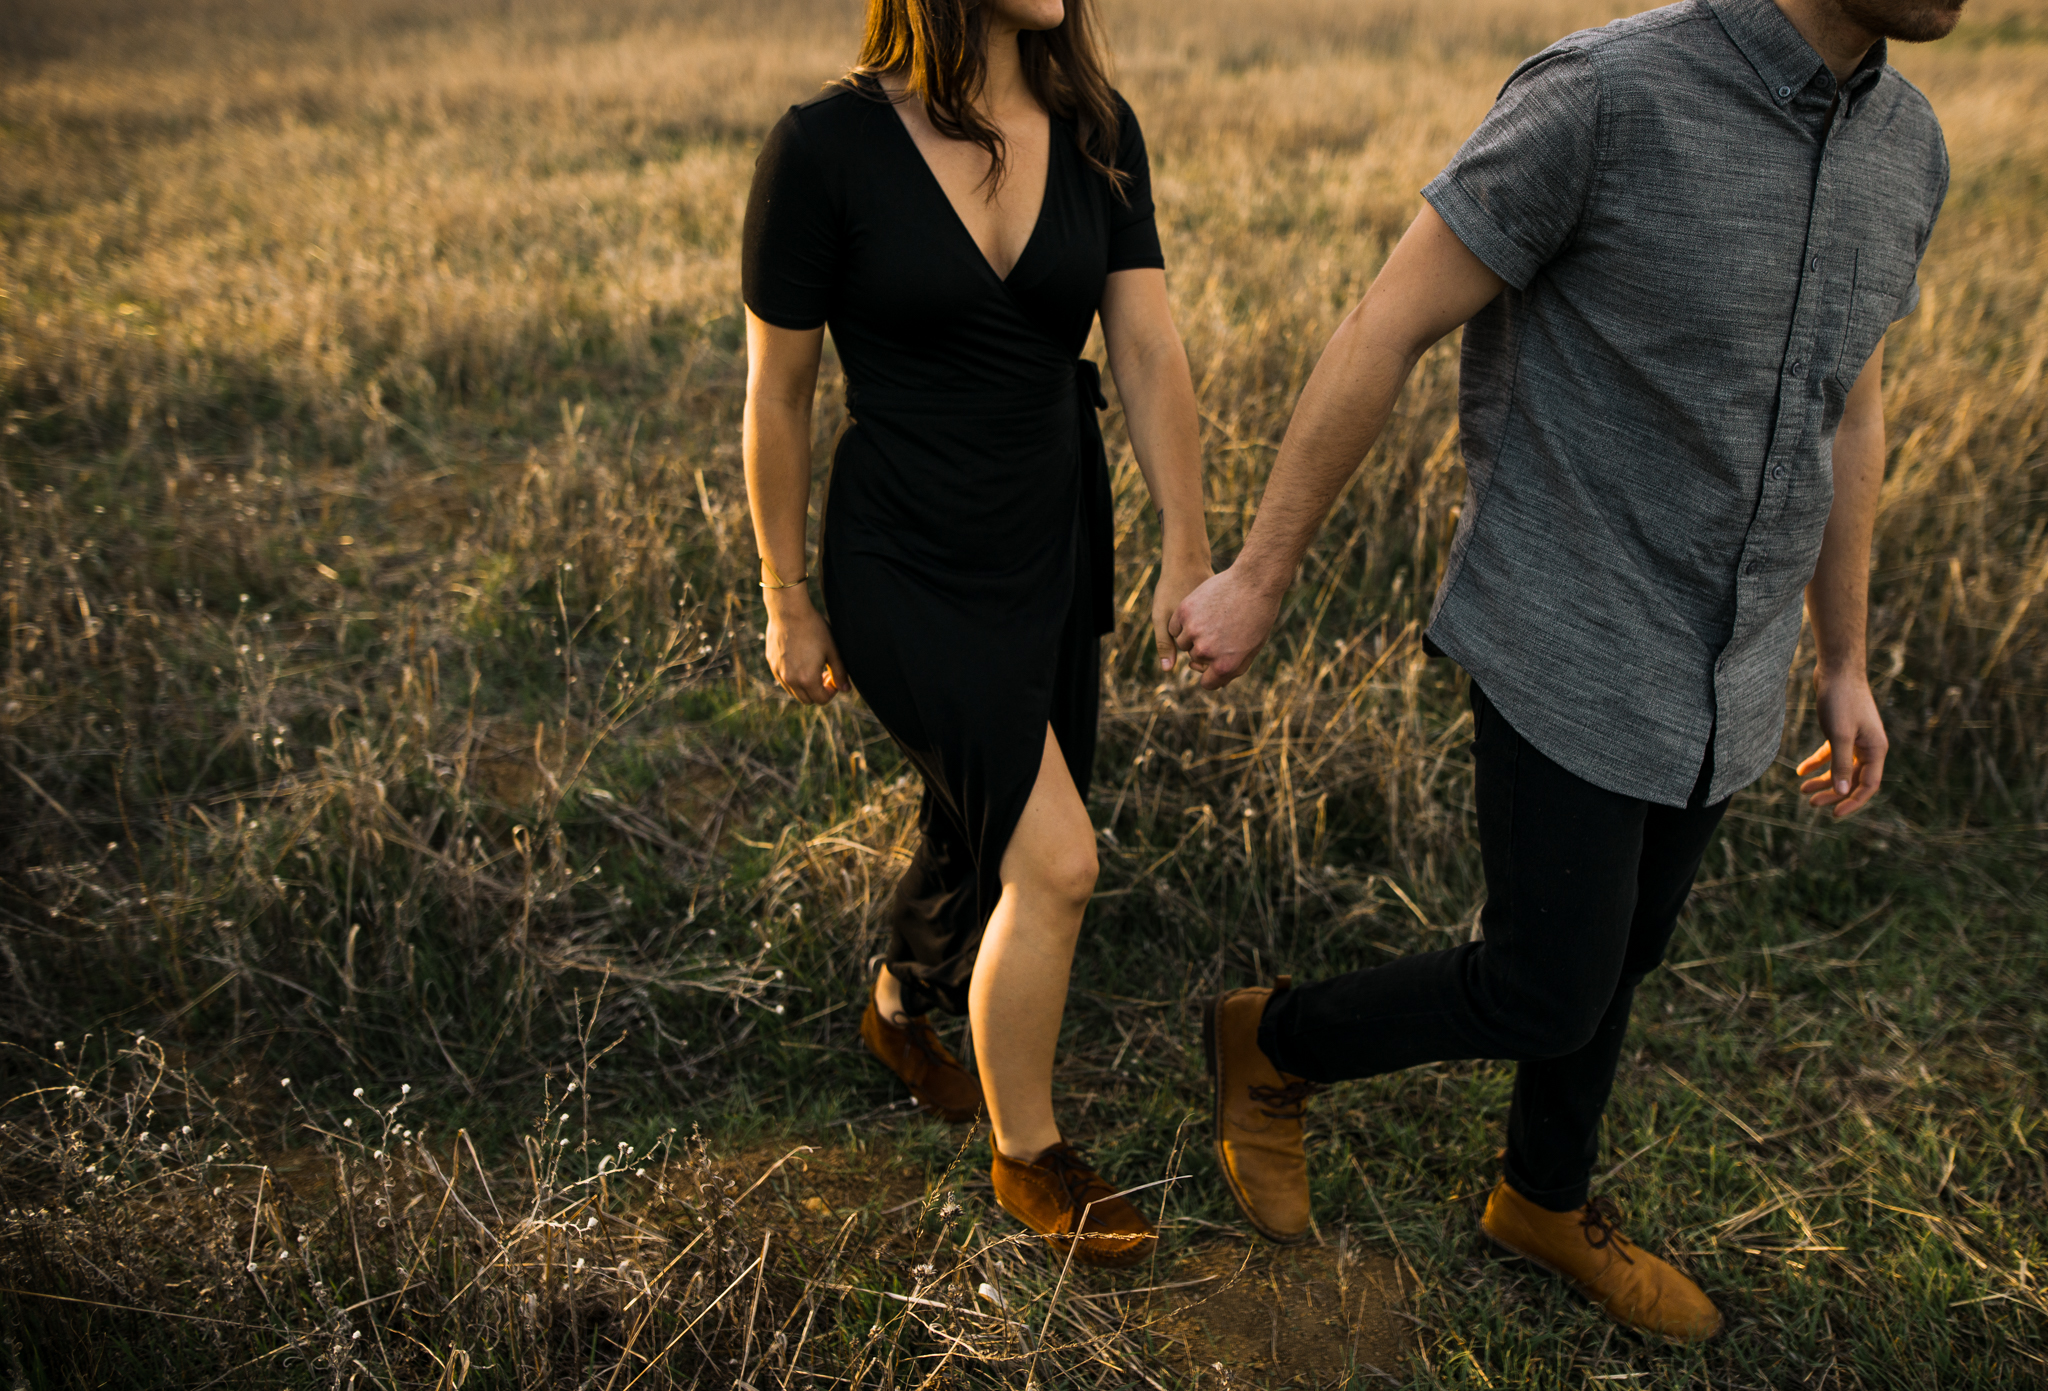 ©Isaiah-&-Taylor-Photography---Malibu-Field-Engagement,-Southern-California-Wedding-Photographer-014.jpg